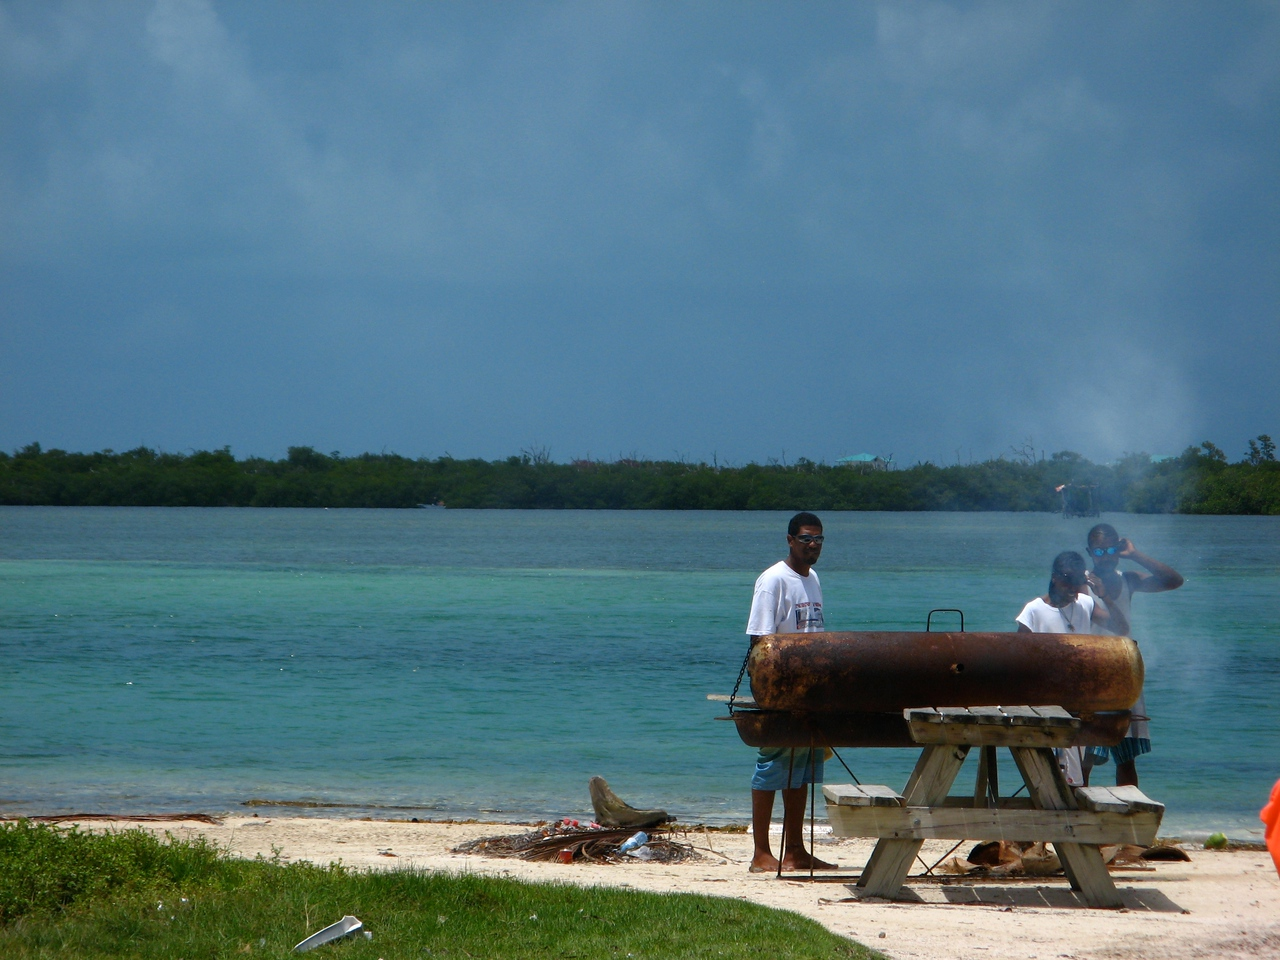 Before we head back to San Pedro, our boat guide cooks up a quick BBQ lunch of the fish we caught on our way over.